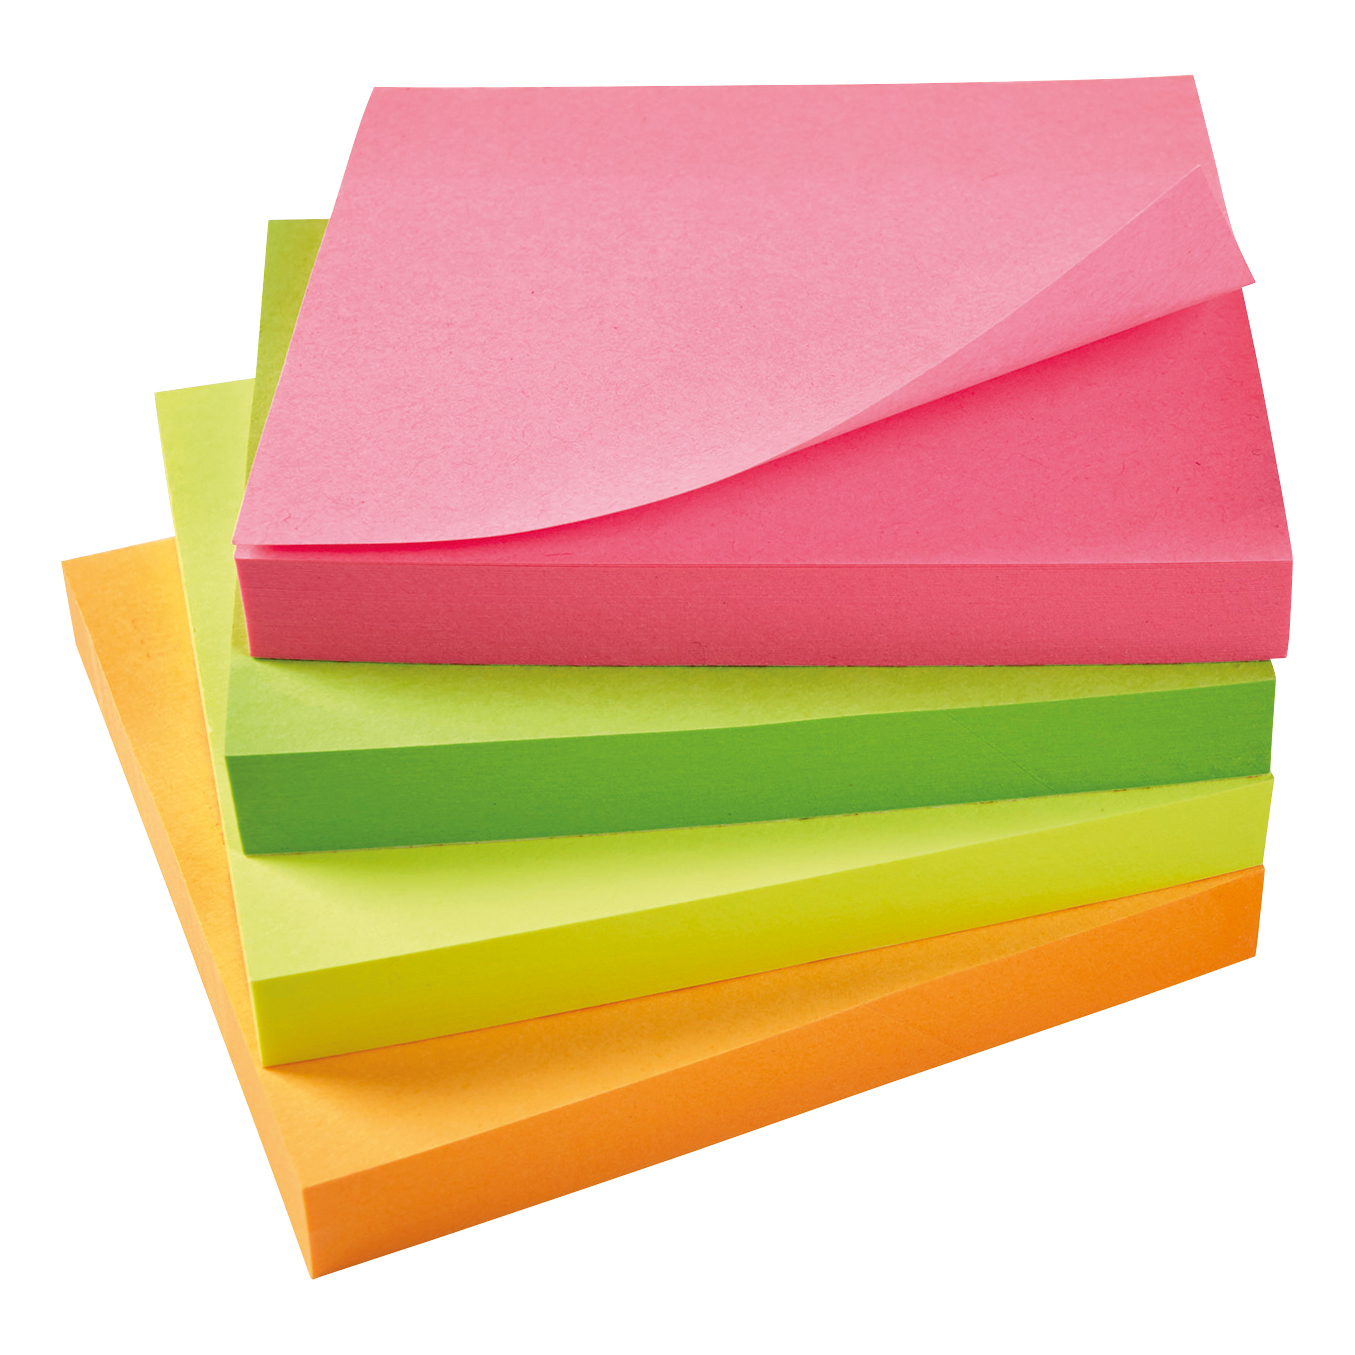 Coloured 5 Star Office Re-Move Notes Repositionable Neon Pad of 100 Sheets 76x76mm Assorted Pack 12